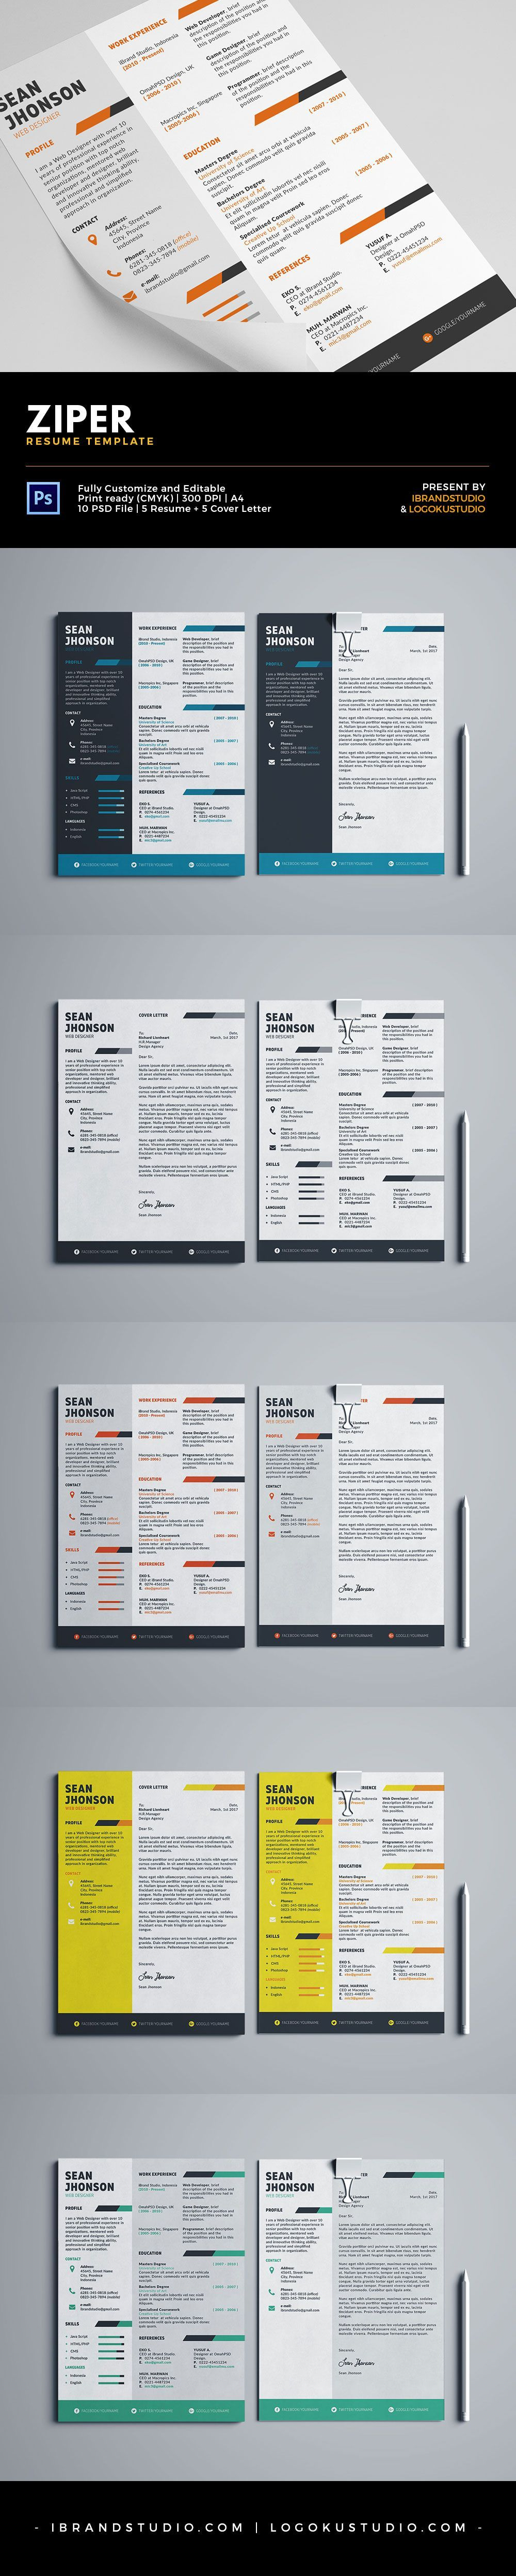 Cv Templates Design%0A Free Ziper Resume Template and Cover Letter    Styles  PSD